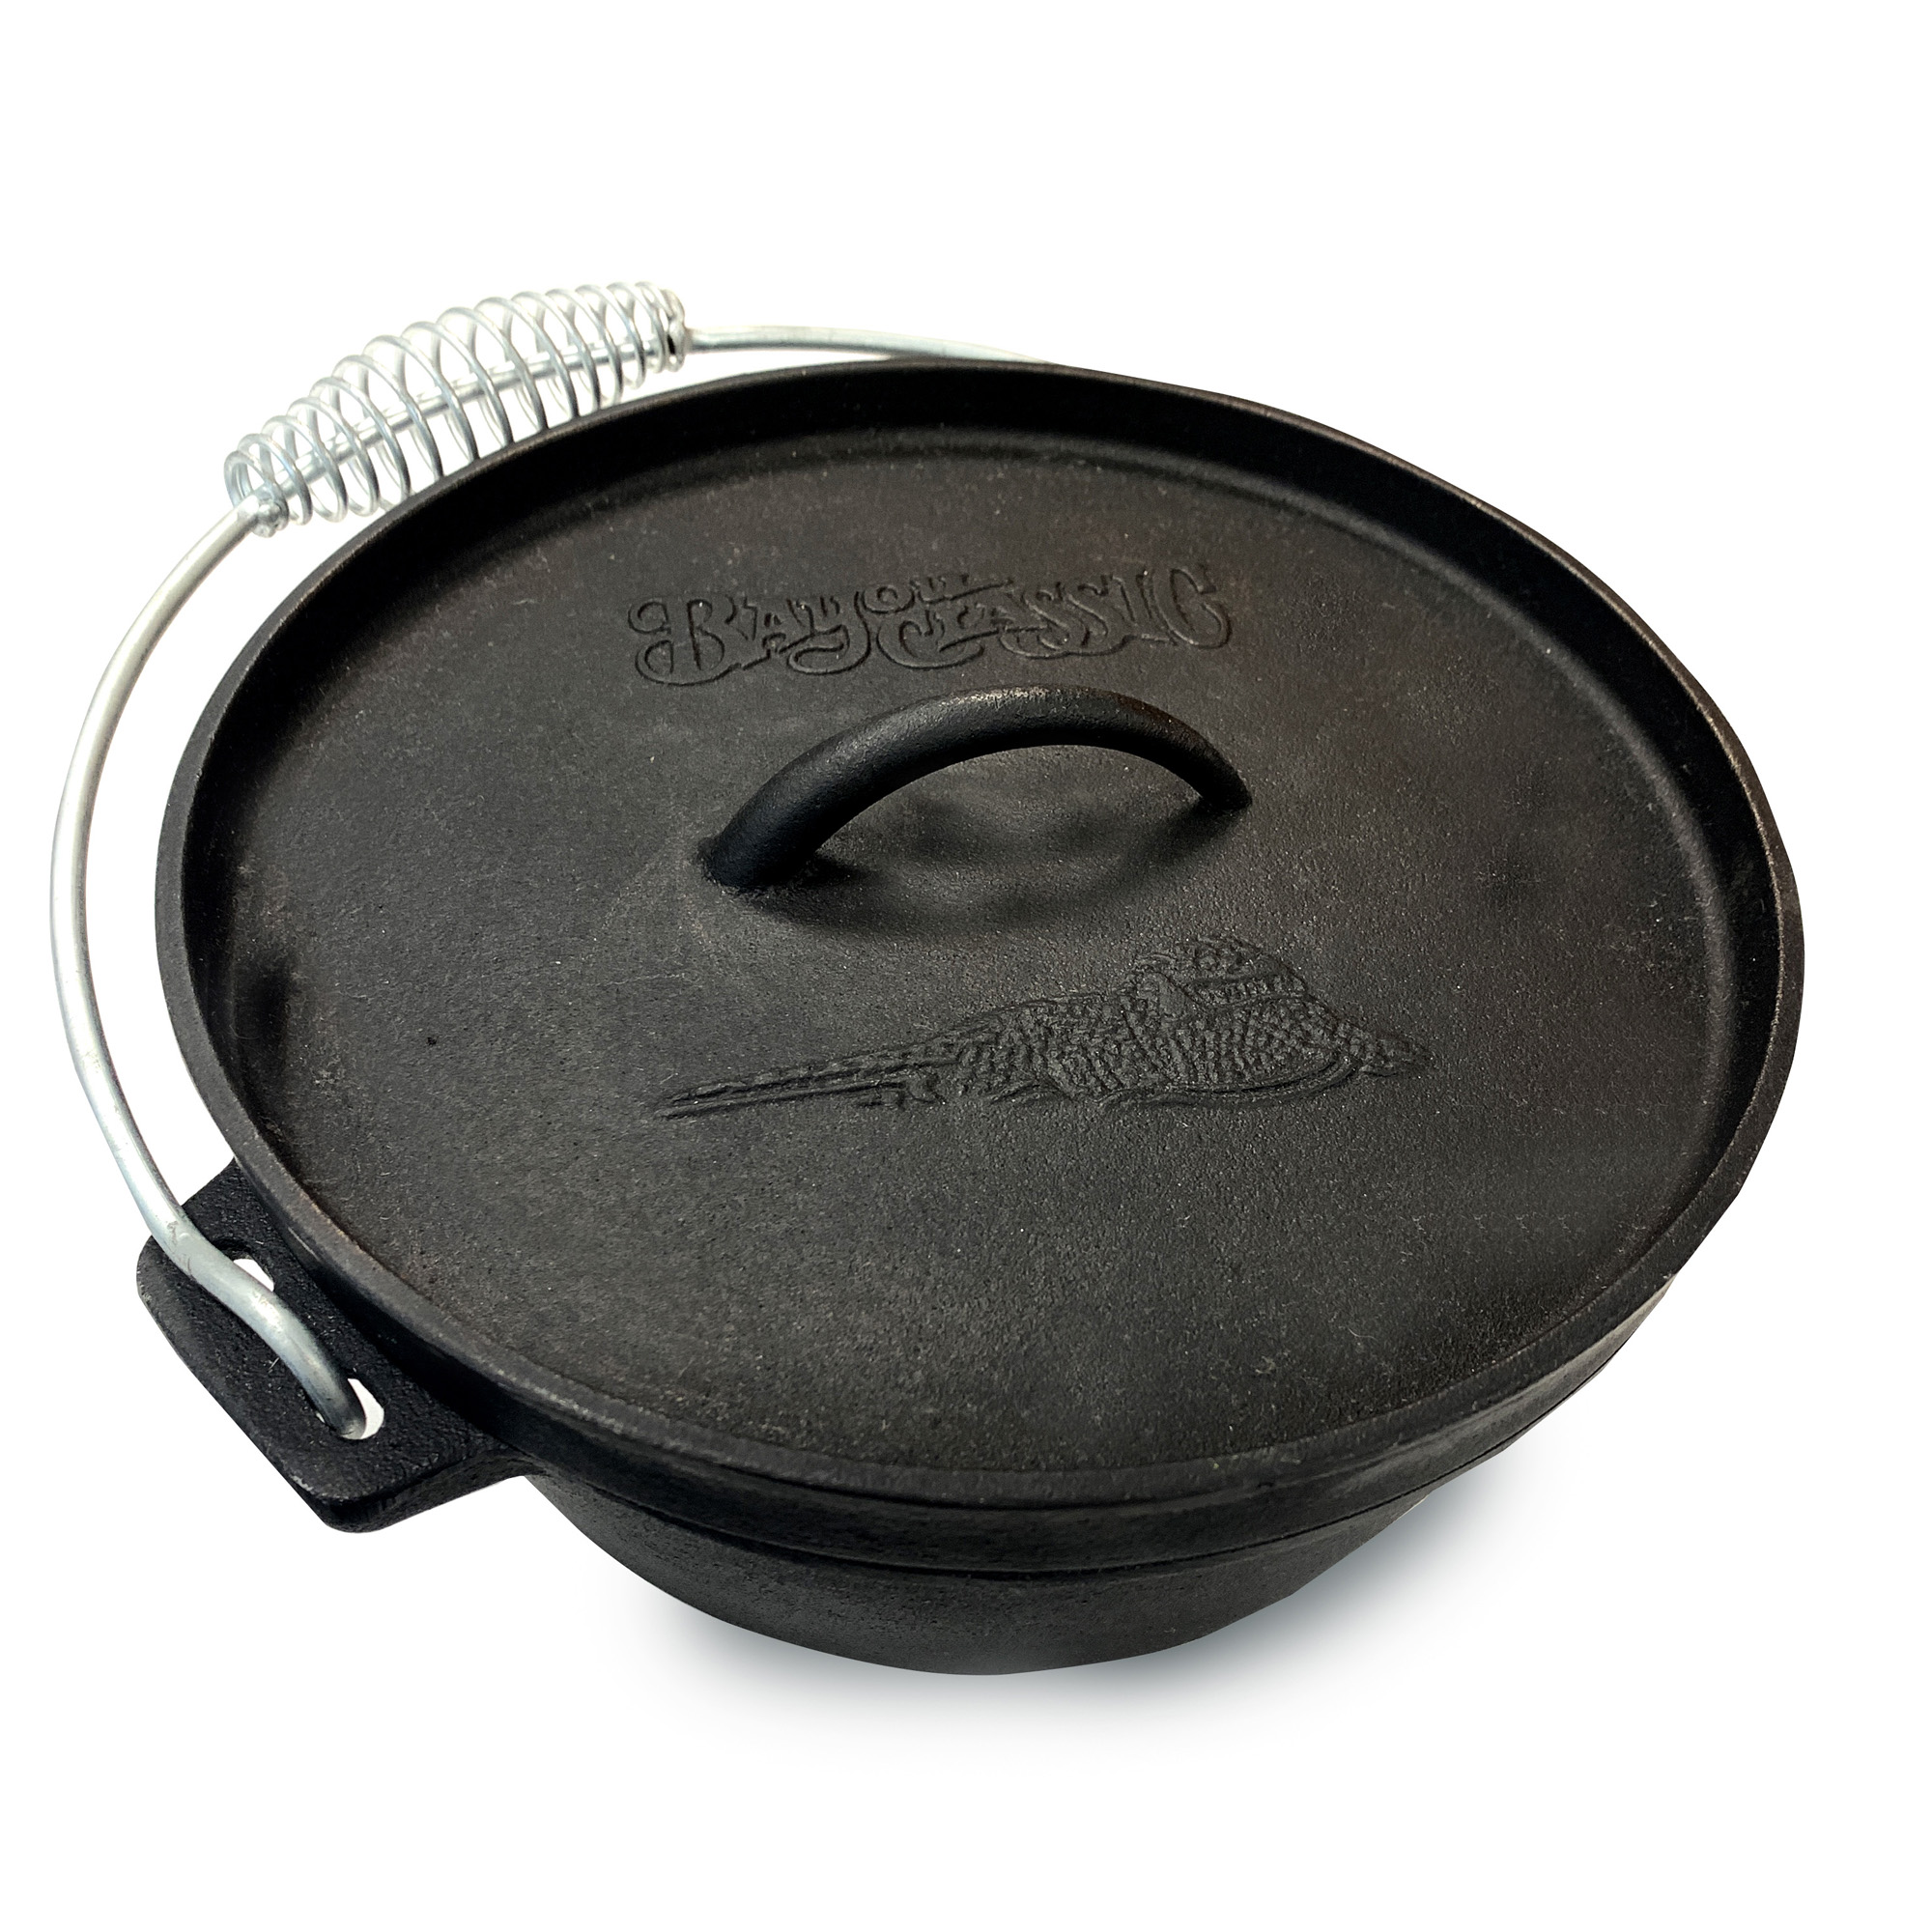 Bayou Classic 7402 2-Quart Cast Iron Dutch Oven